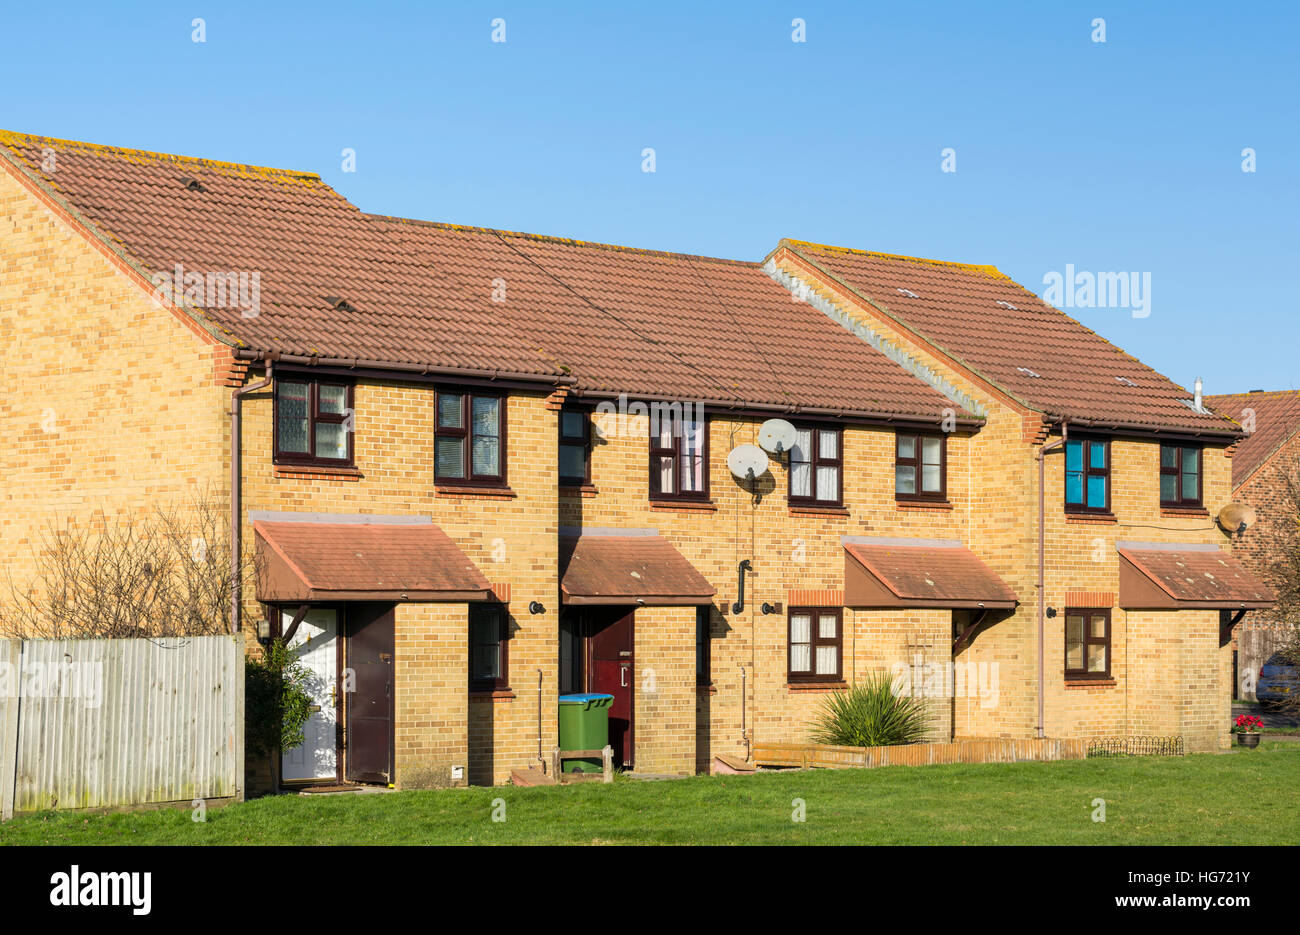 Modern red brick terraced houses in the south of england uk